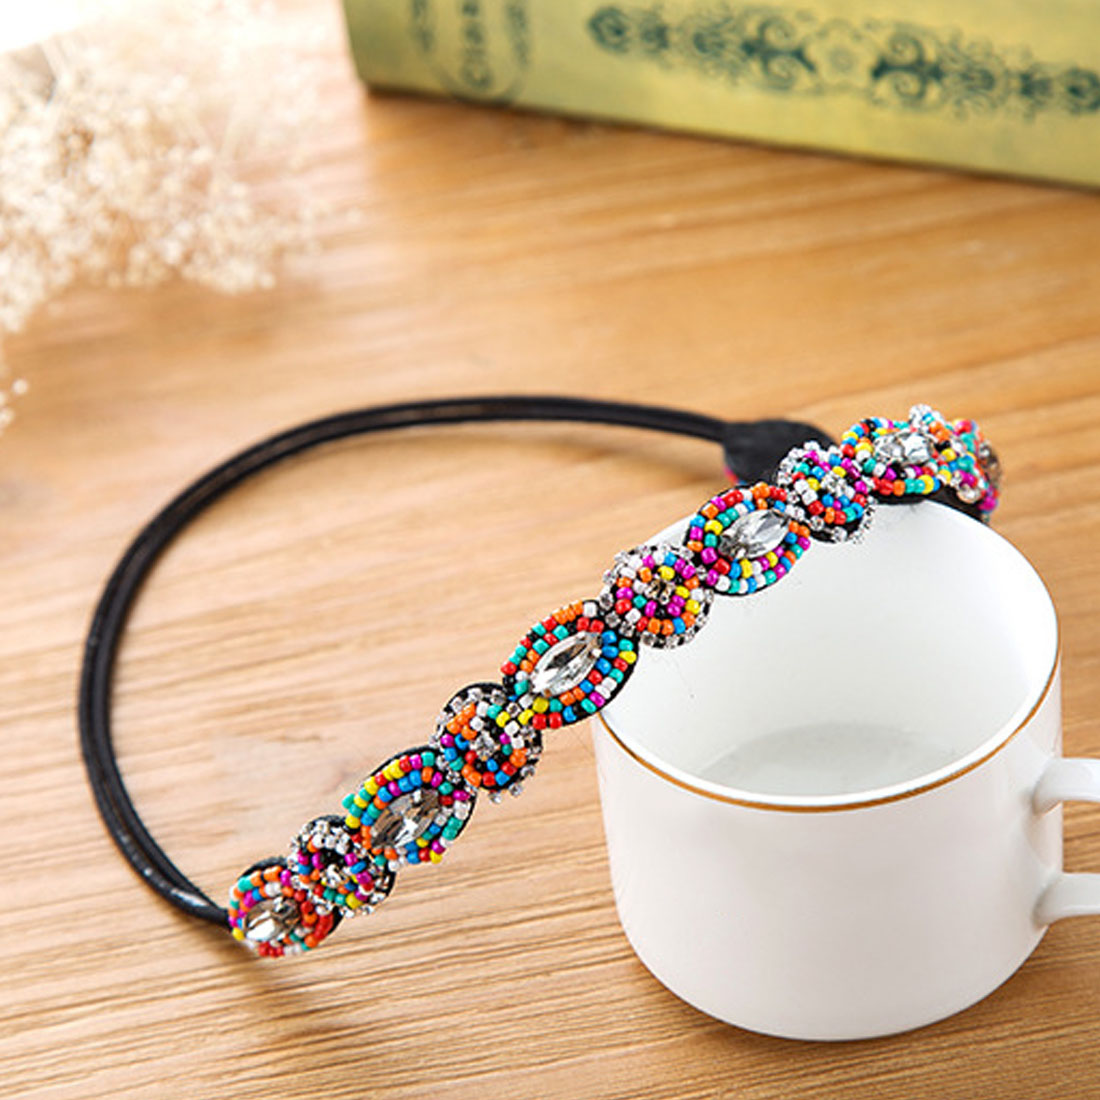 Party Bohemian Rhinestone Elastic Hair Band Hot Hair Accessory For Woman New Vintage Bohemian Ethnic Beads Handmade Headband